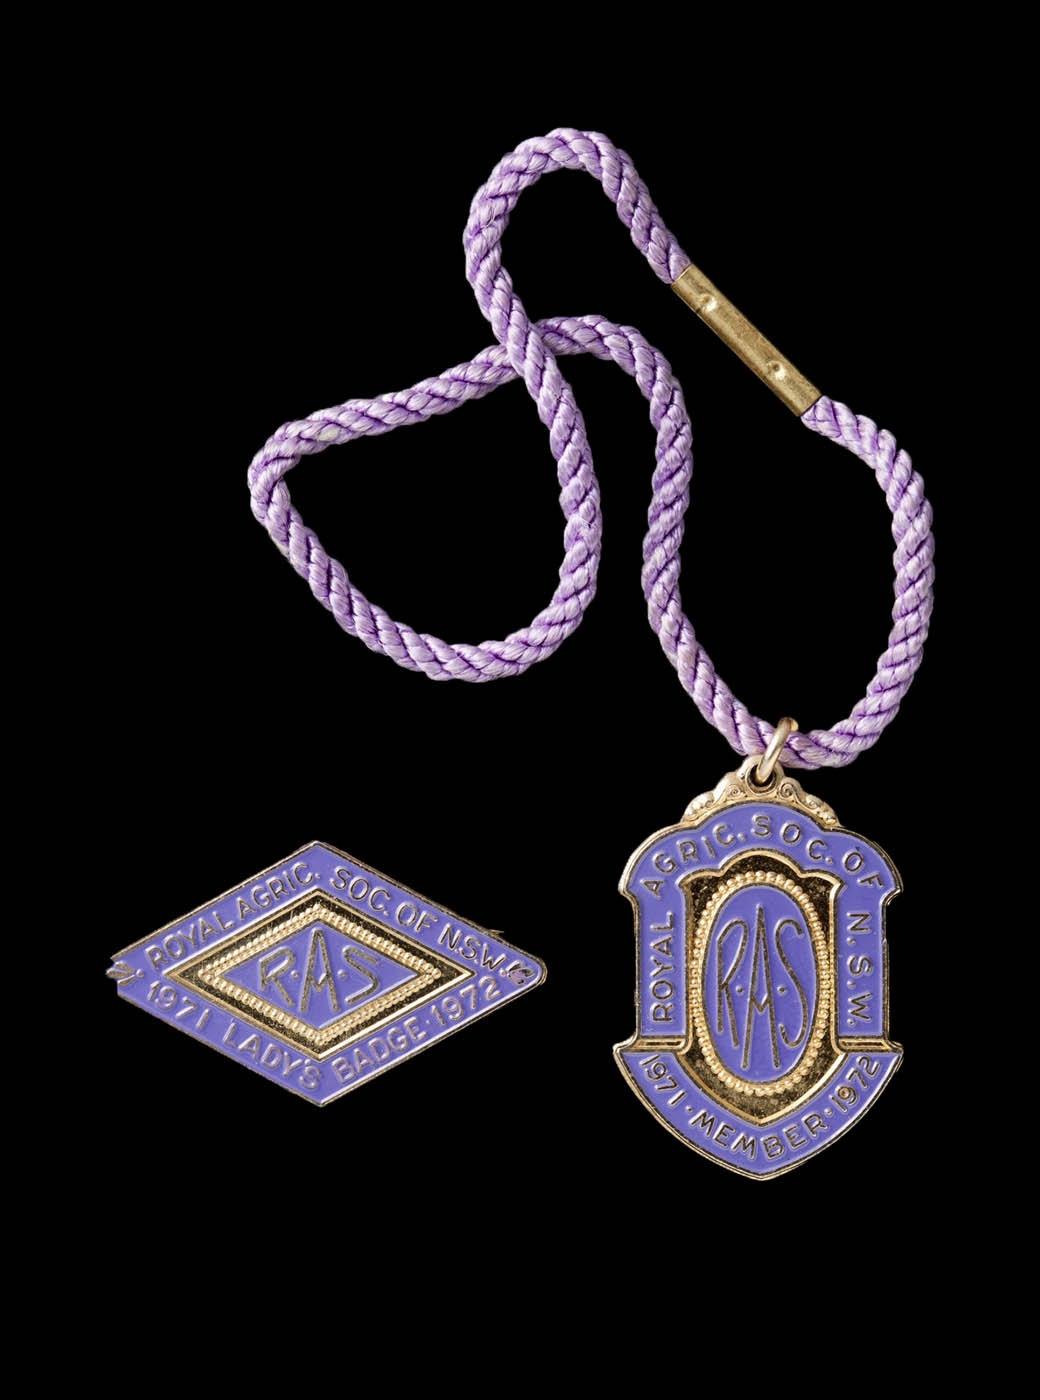 Royal Agricultural Society of N.S.W. members badge, attached to a purple cord, and ladies badge, 1971-72 - click to view larger image